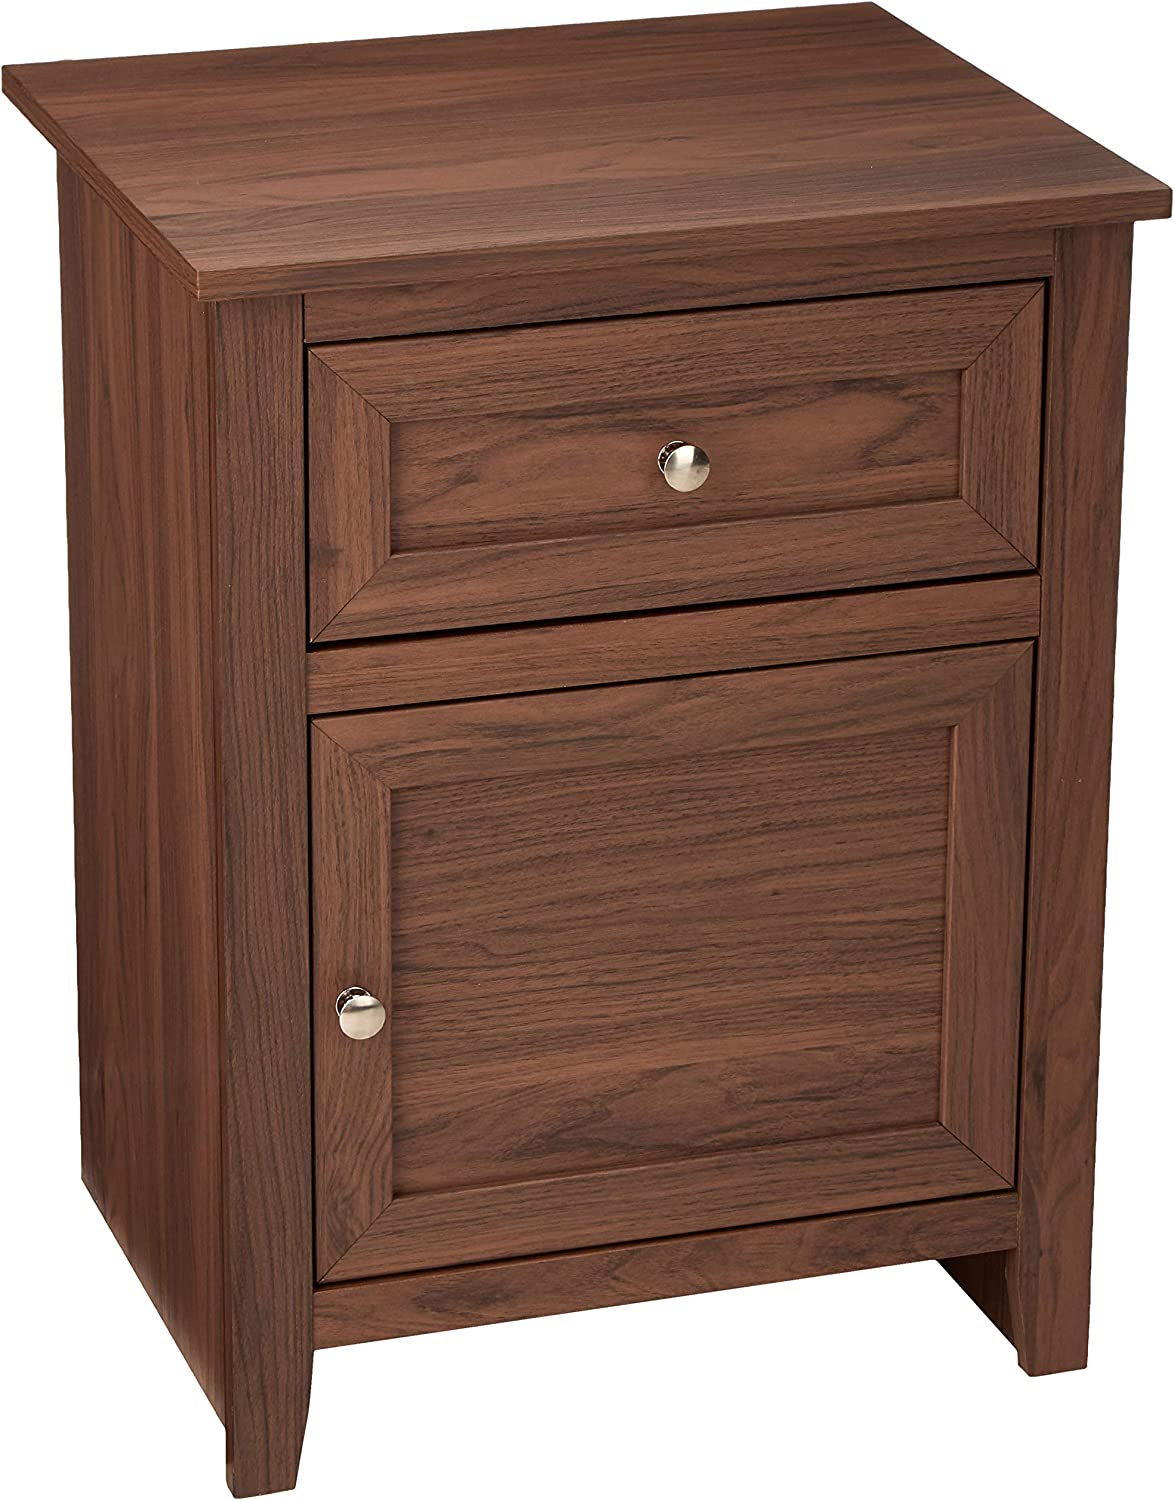 AmazonBasics Classic Wood Nightstand End Table with Cabinet - Walnut